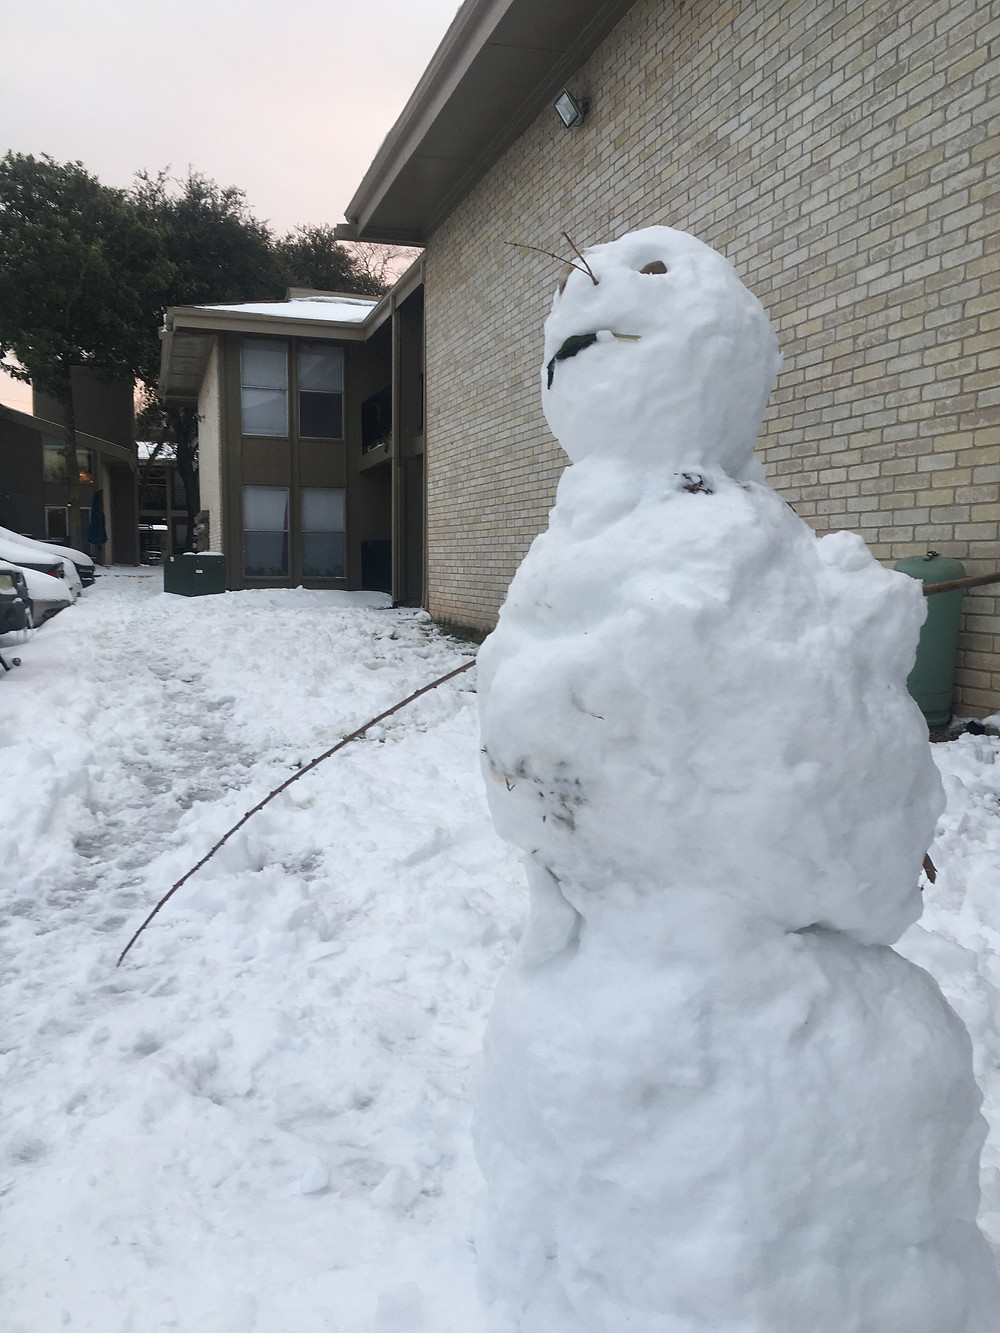 A rare snowman sighting in Austin Texas after the worst storm to hit the area in 72 years dumped over 6 inches of snow on the normally warm city